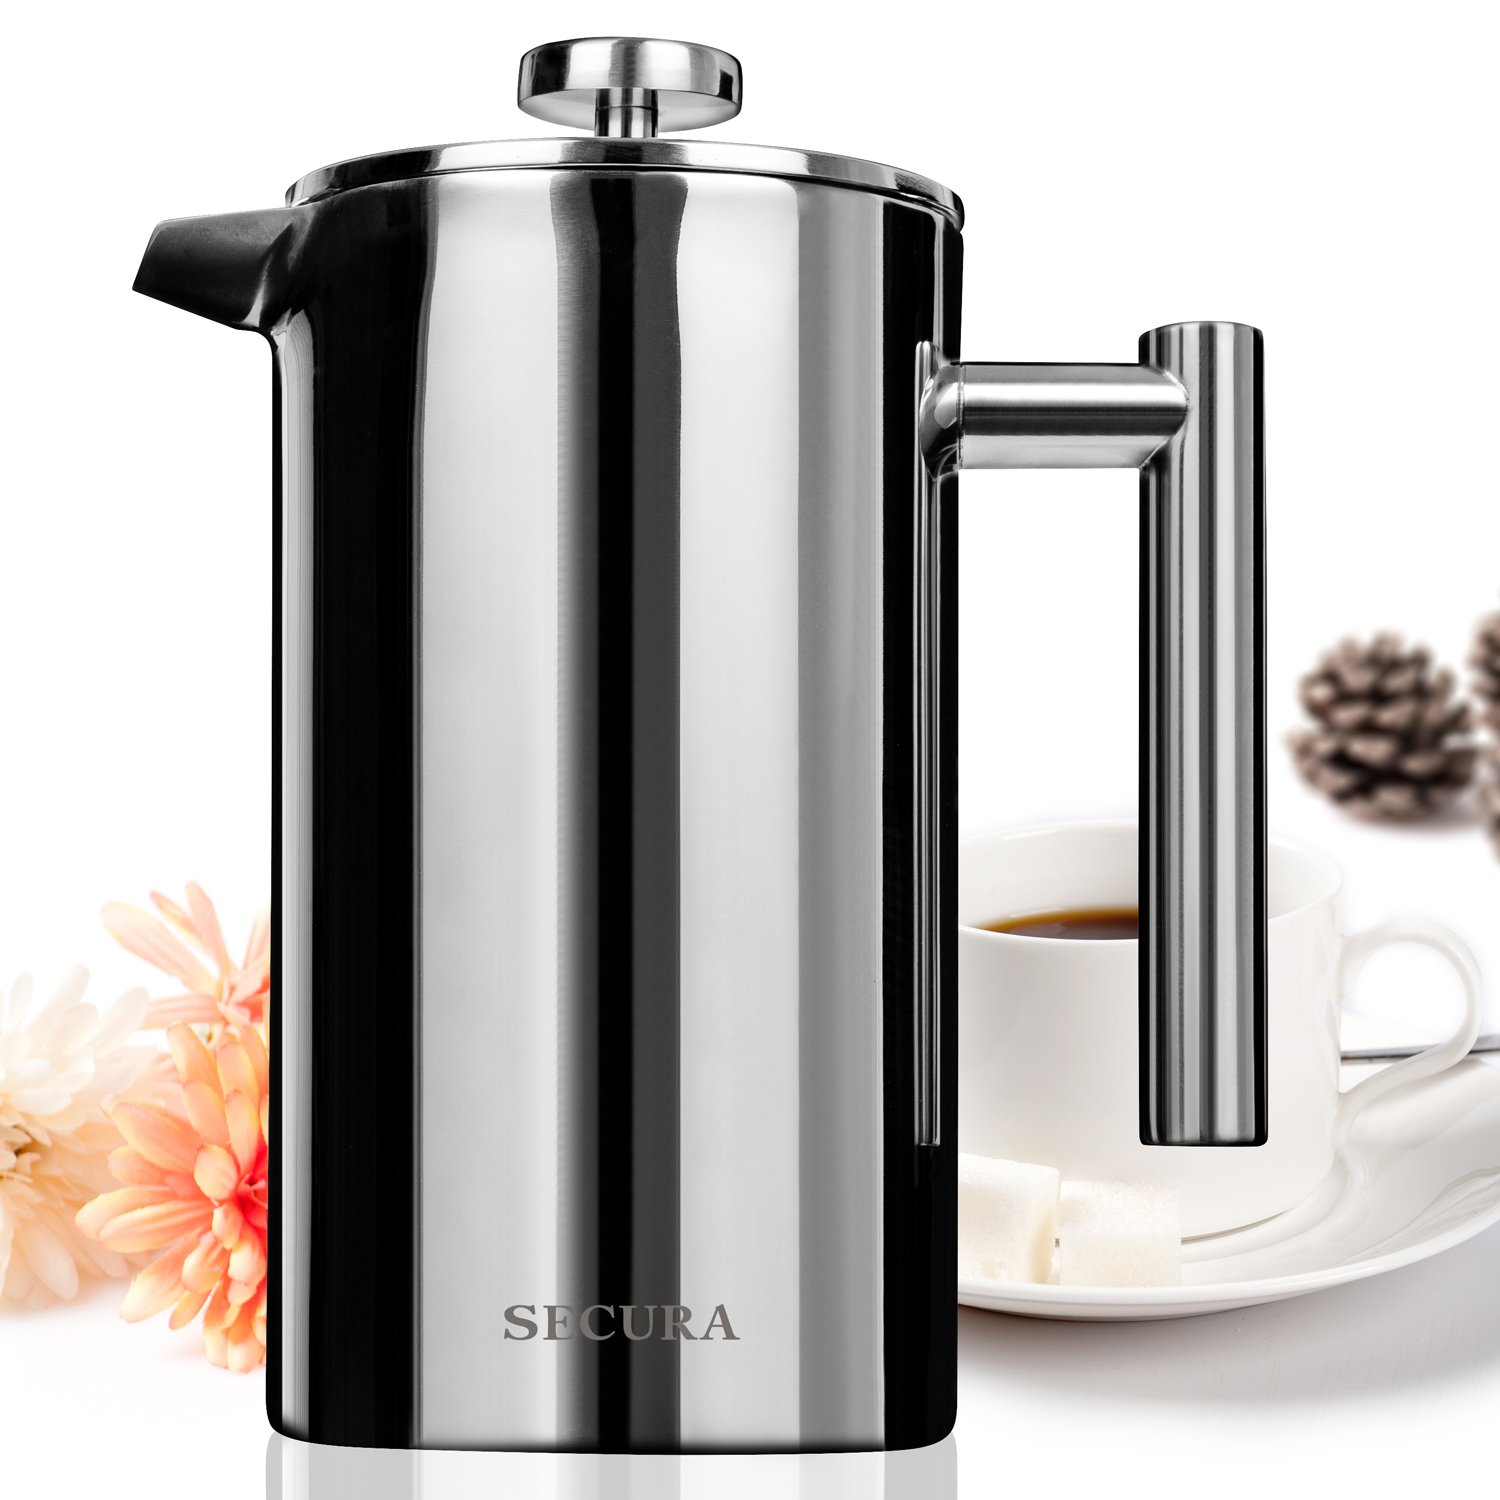 Secura French Press Coffee Maker Review